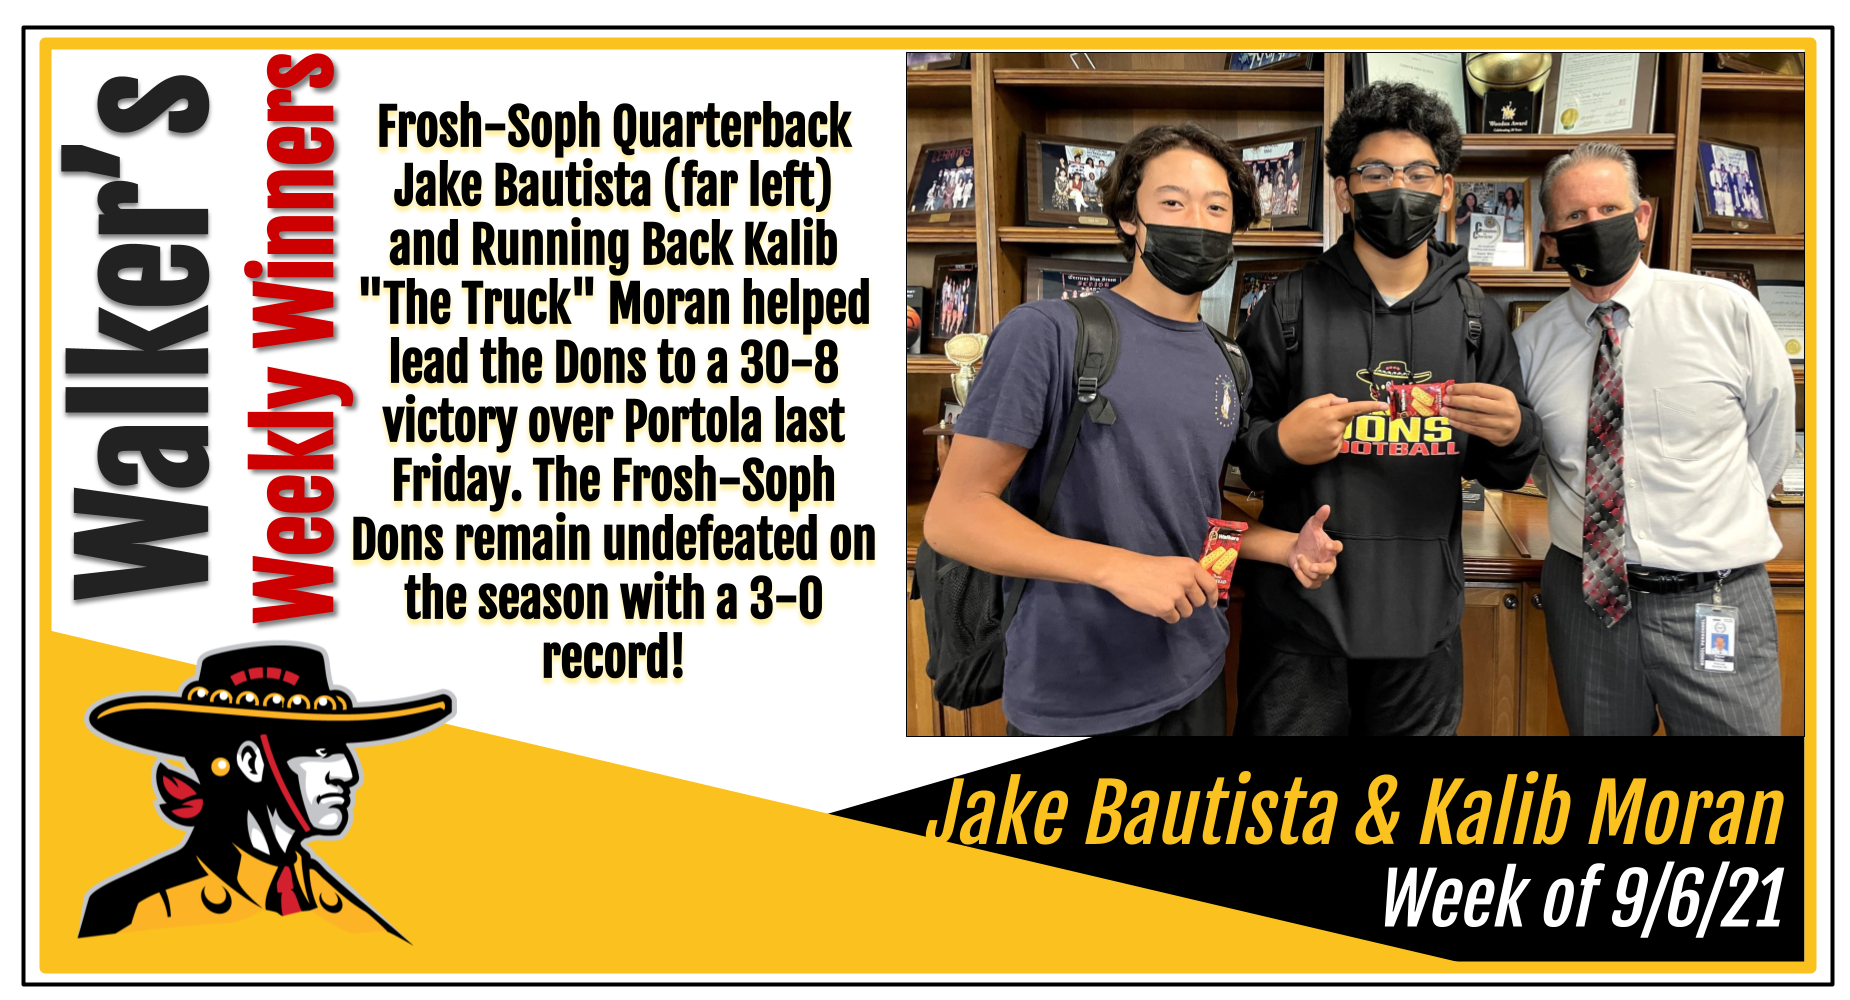 Walker's Weekly Winners for the week of  8/30: Frosh-Soph Quarterback Jake Bautista (far left)  and Running Back Kalib 'The Truck' Moran helped lead the Dons to a 30-8 victory over Portola last Friday. The Frosh-Soph Dons remain undefeated on the season with a 3-0 record!